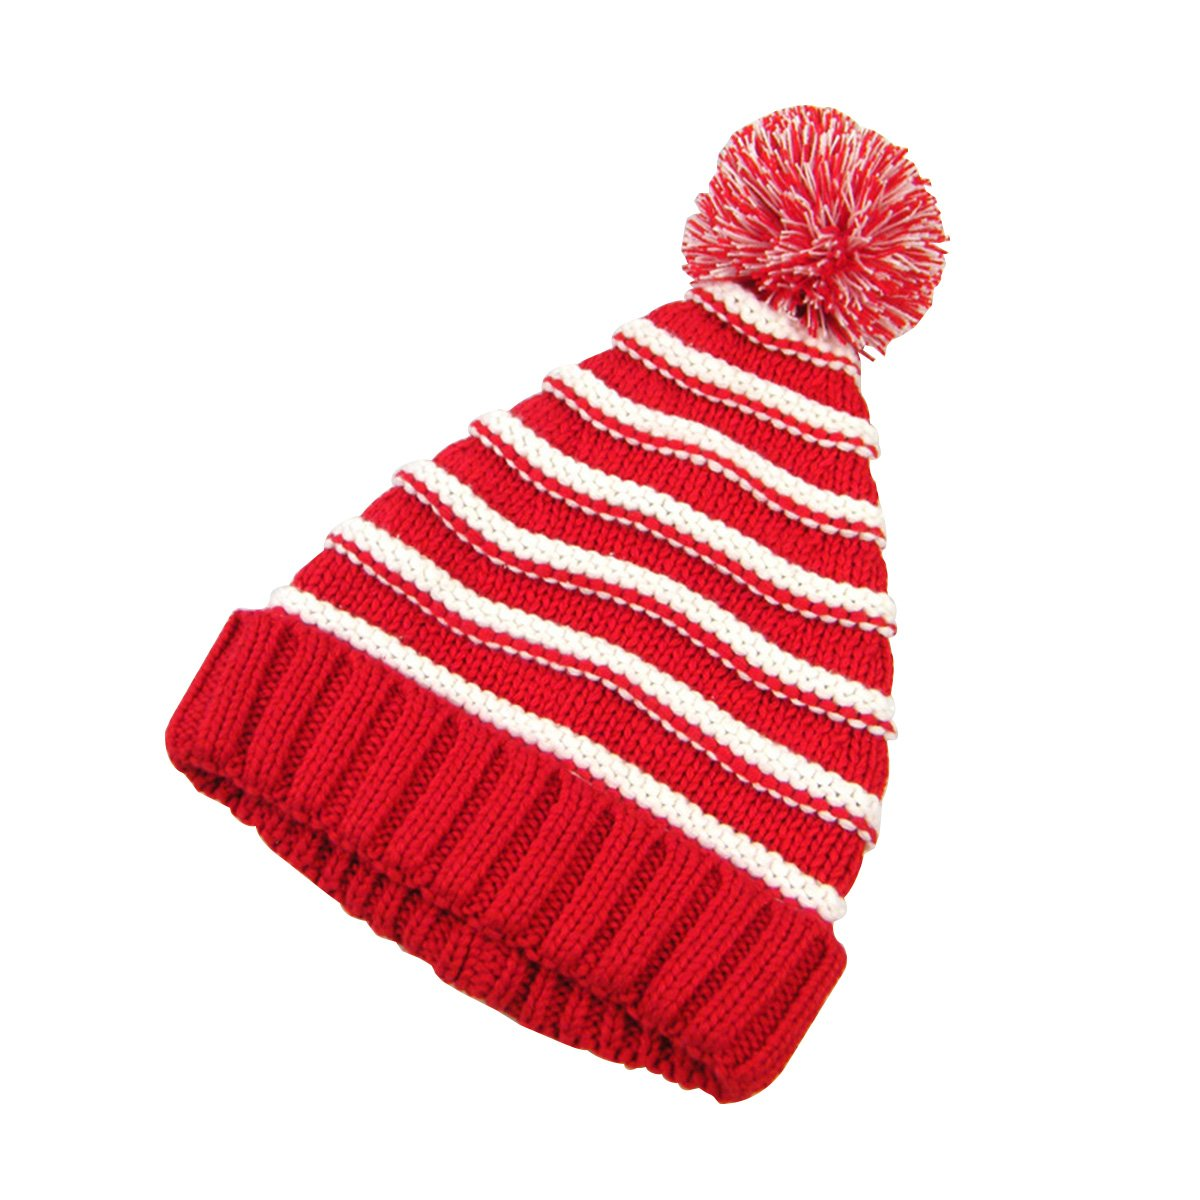 Classic Warm Adorable Kids Striped Knit Winter Pom Pom Hat Beanie Hats for Christmas S Red /& White